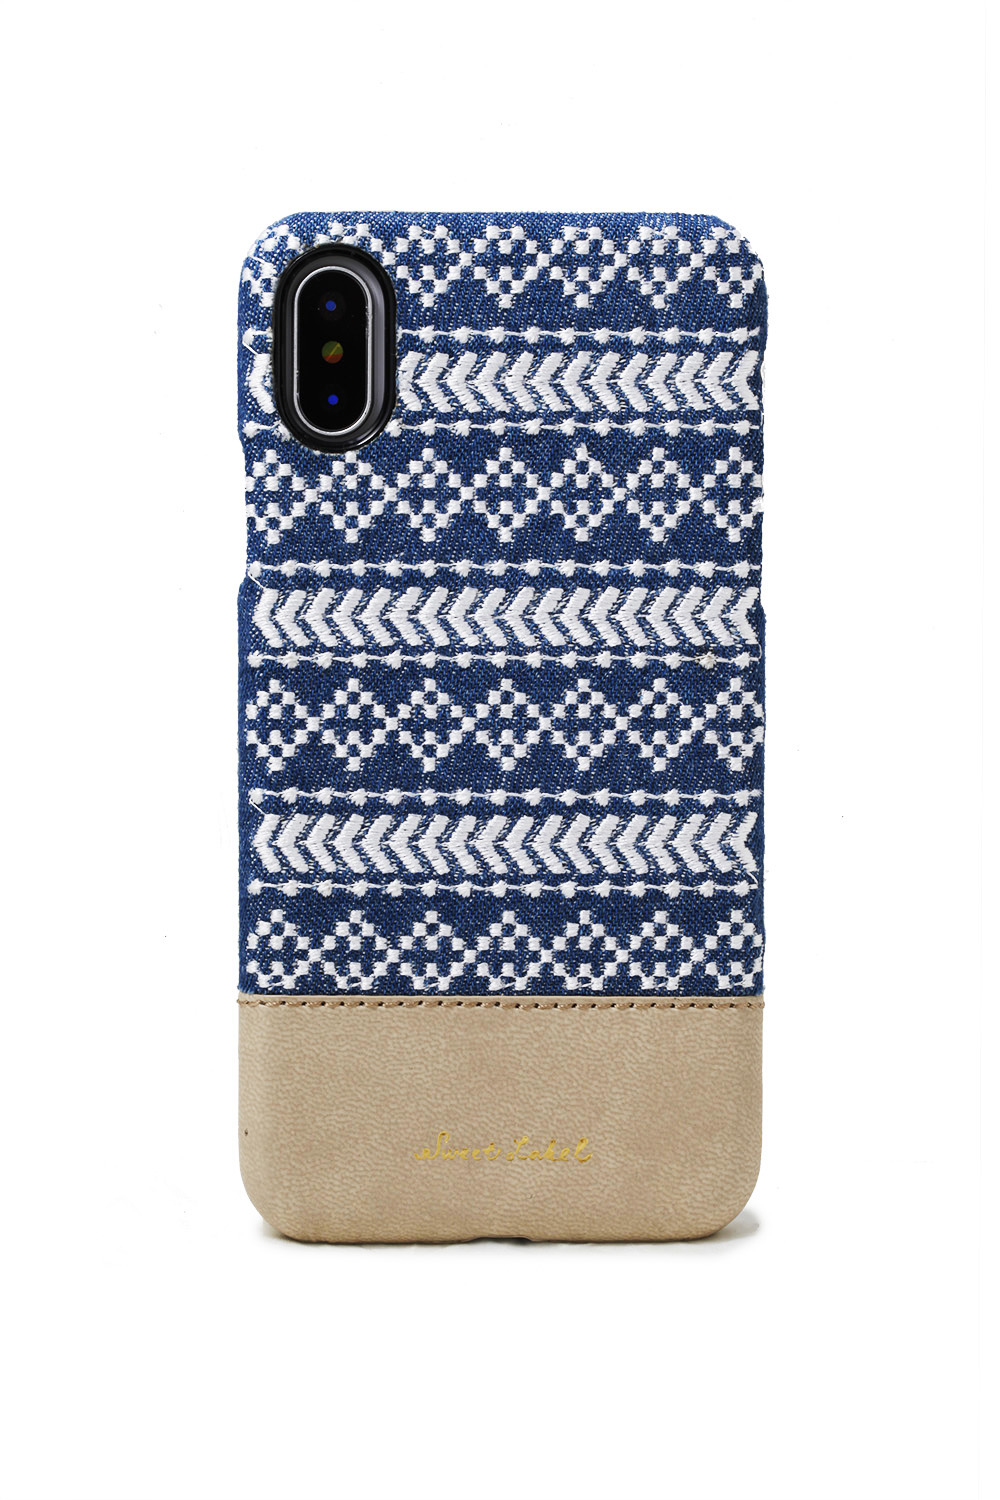 Folklore Single For iPhone X Case